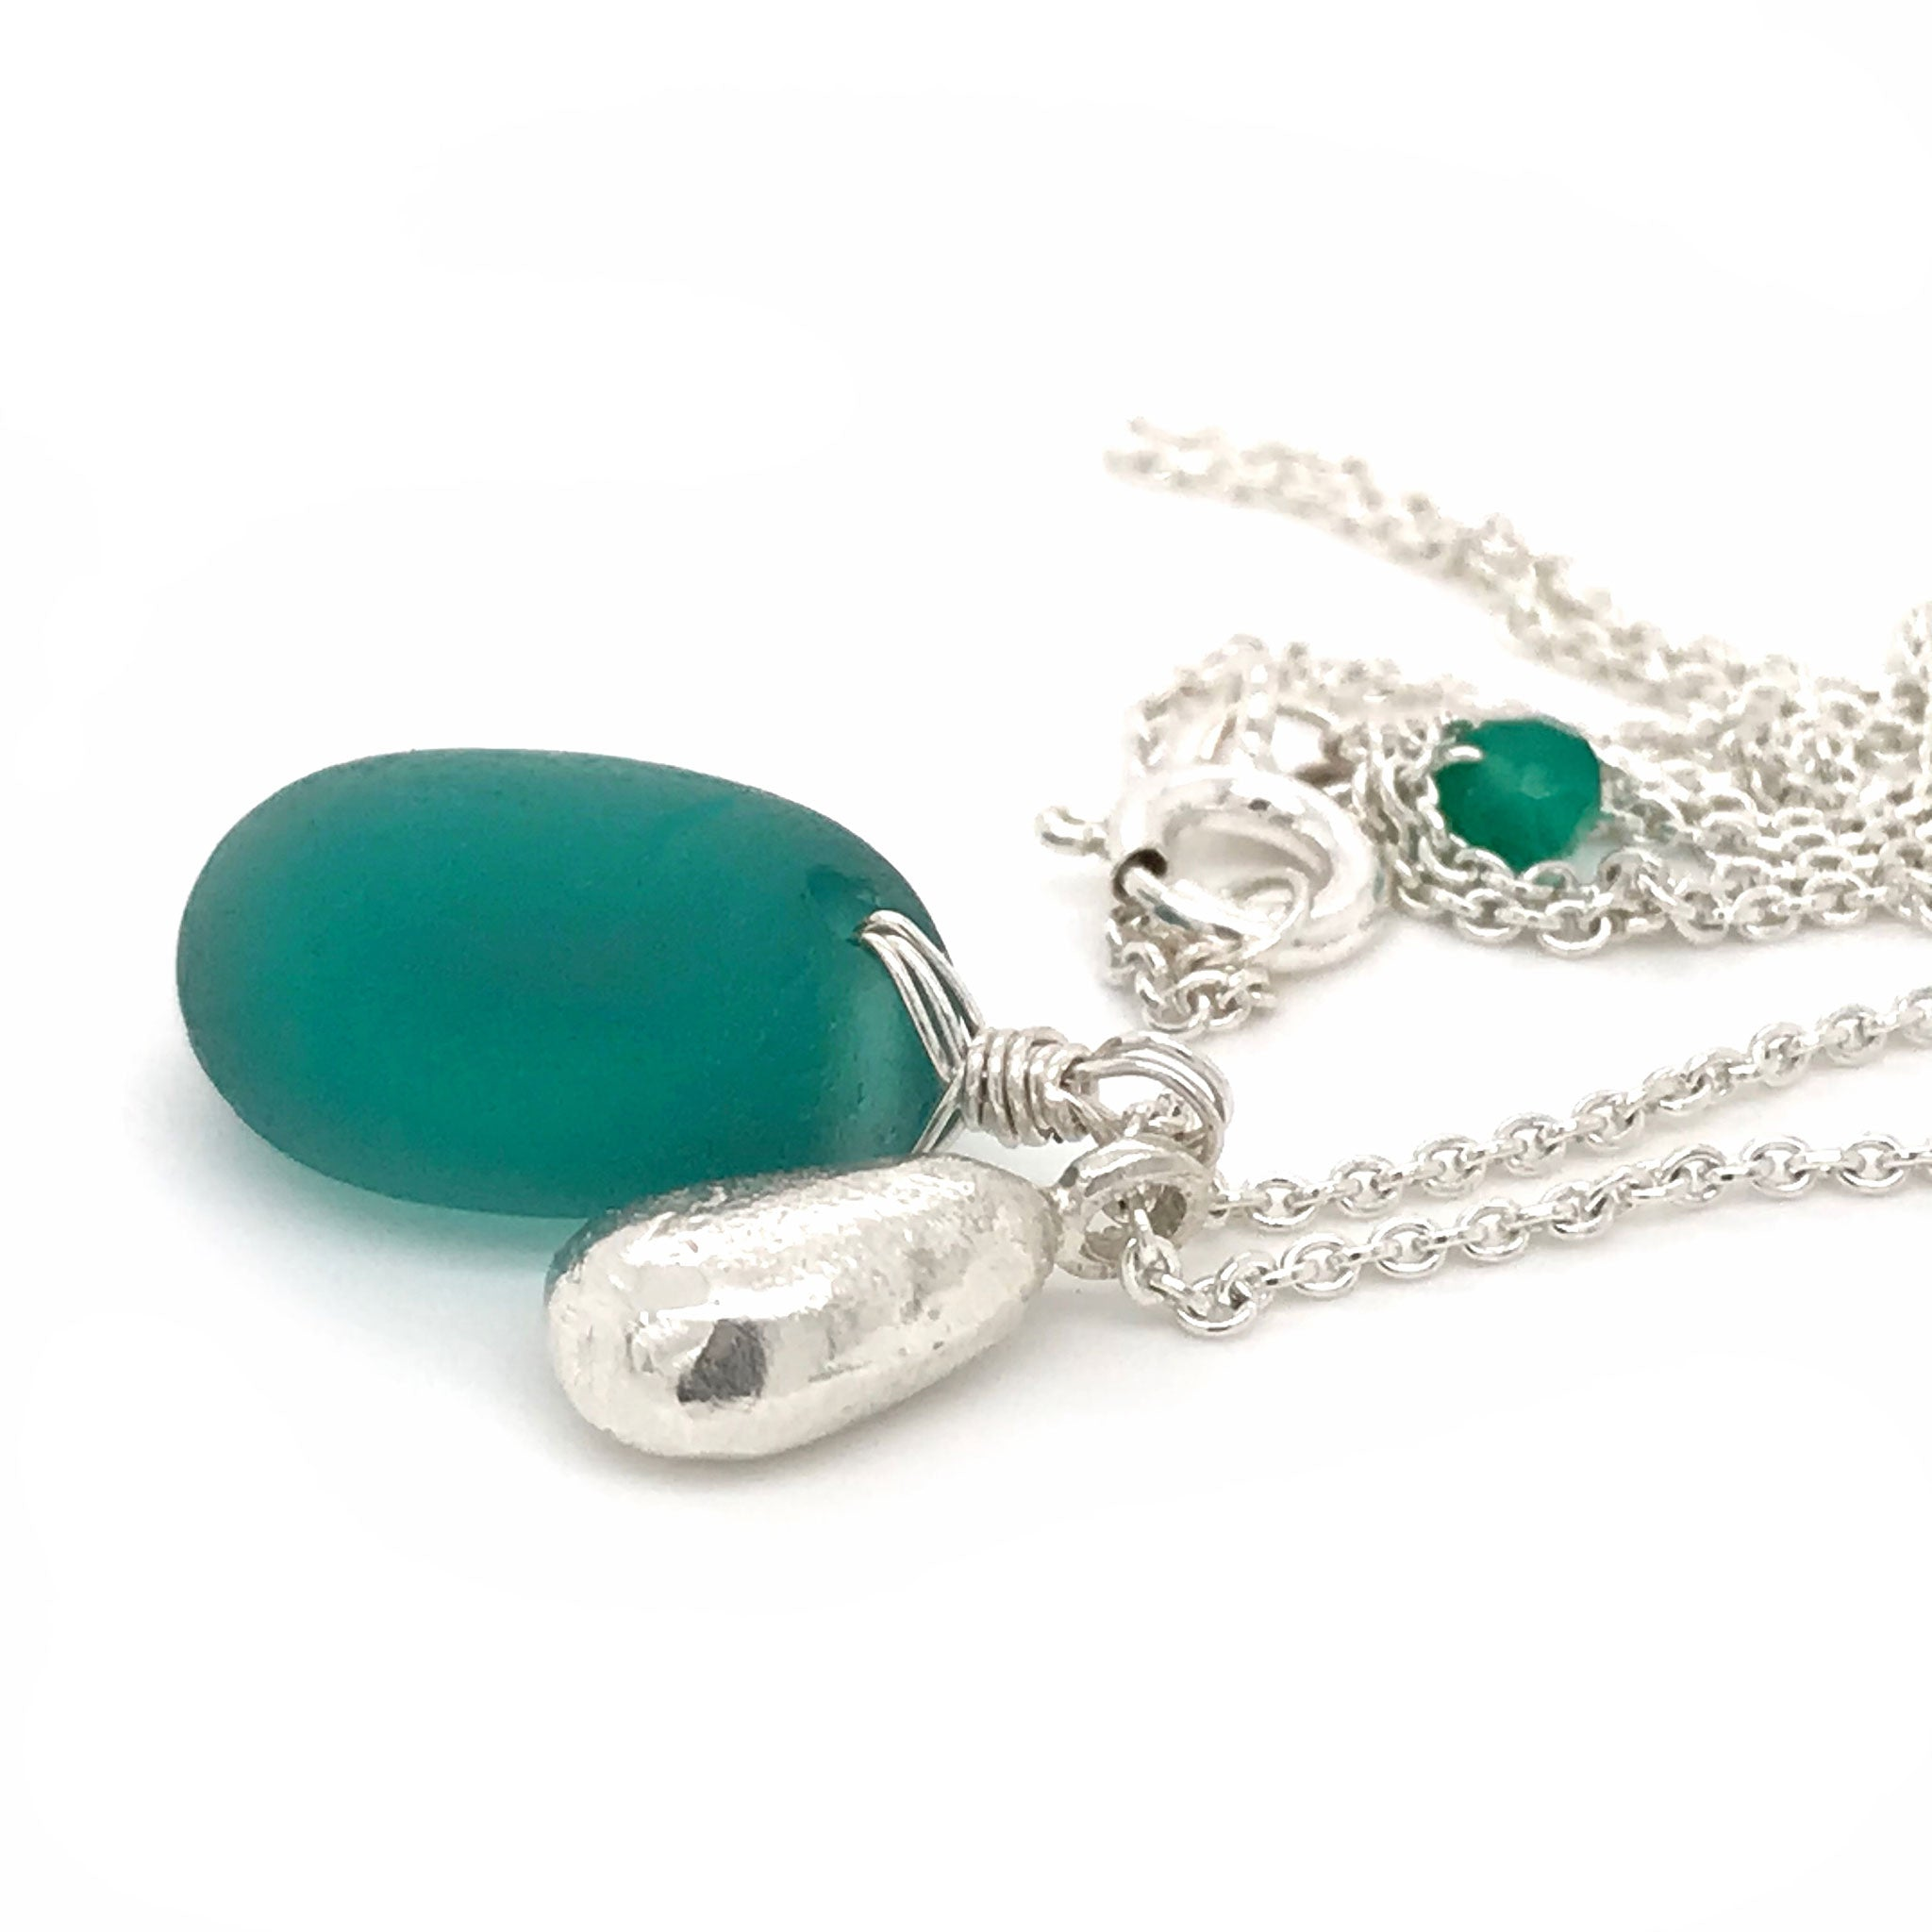 teal green seaglass necklace on sterling silver chain with solid silver teardrop charm Kriket Broadhurst jewellery gift for wife